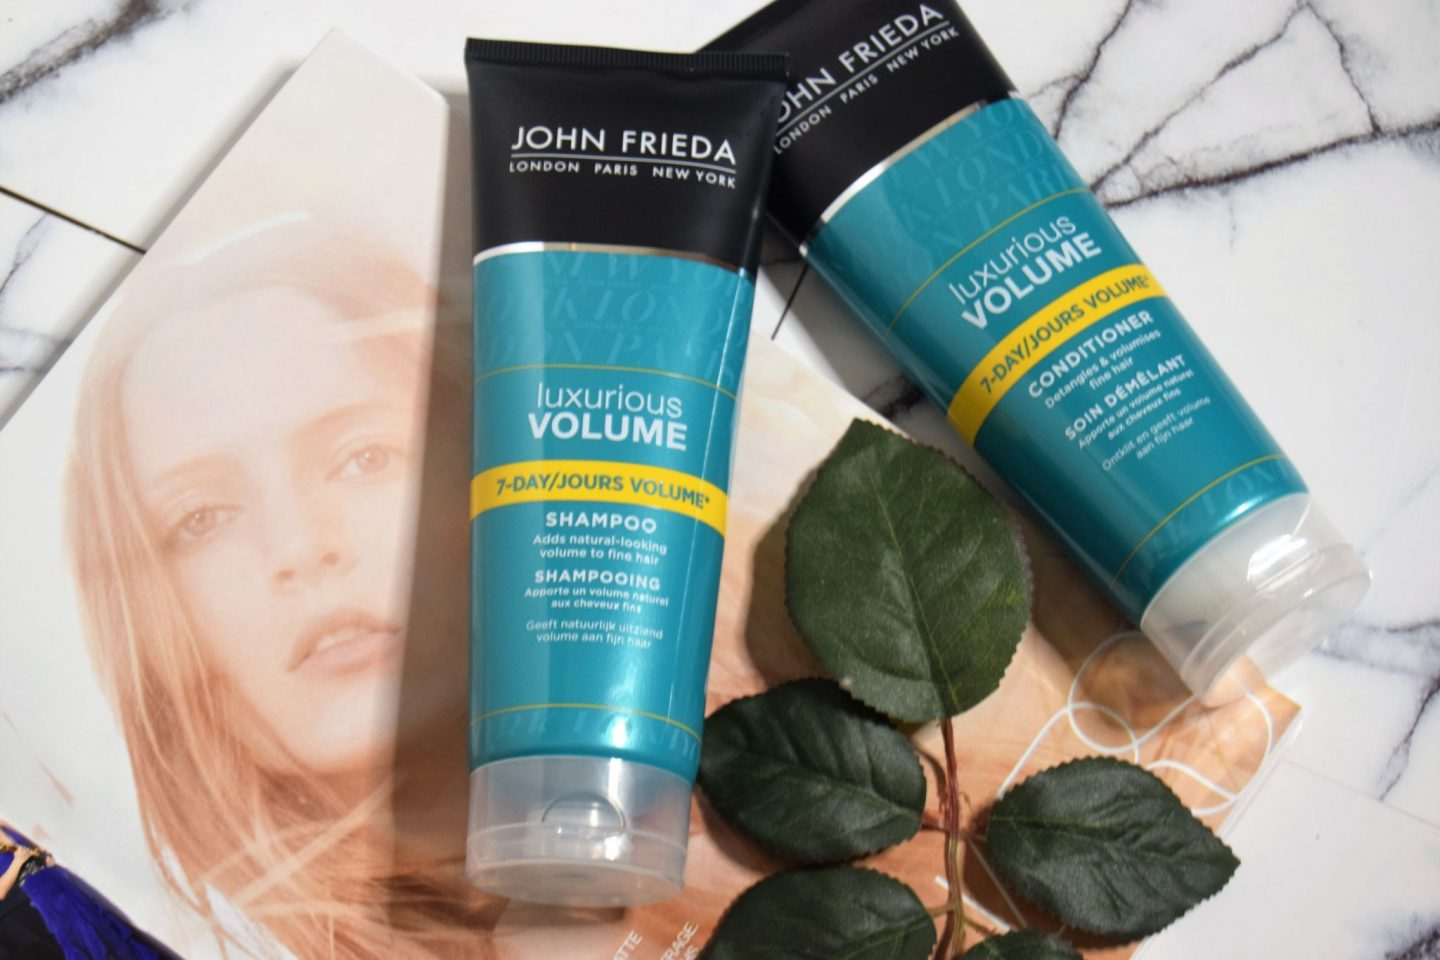 Is Your Hair Ready For The Winter? John Frieda Luxurious Volume Review